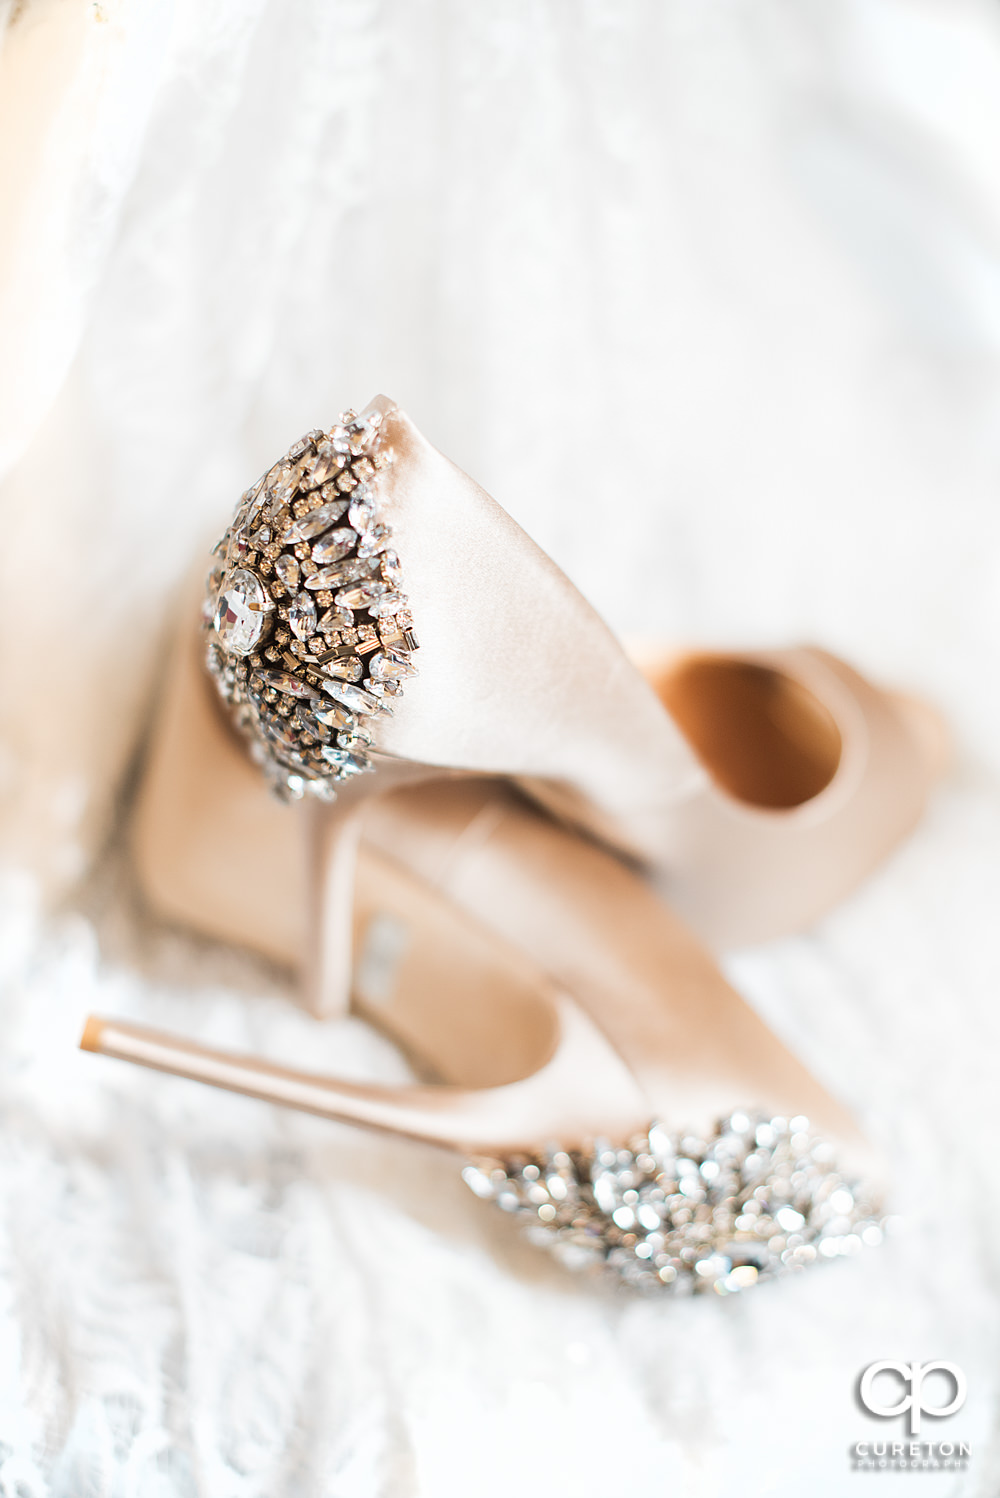 Bries shoes with bling.